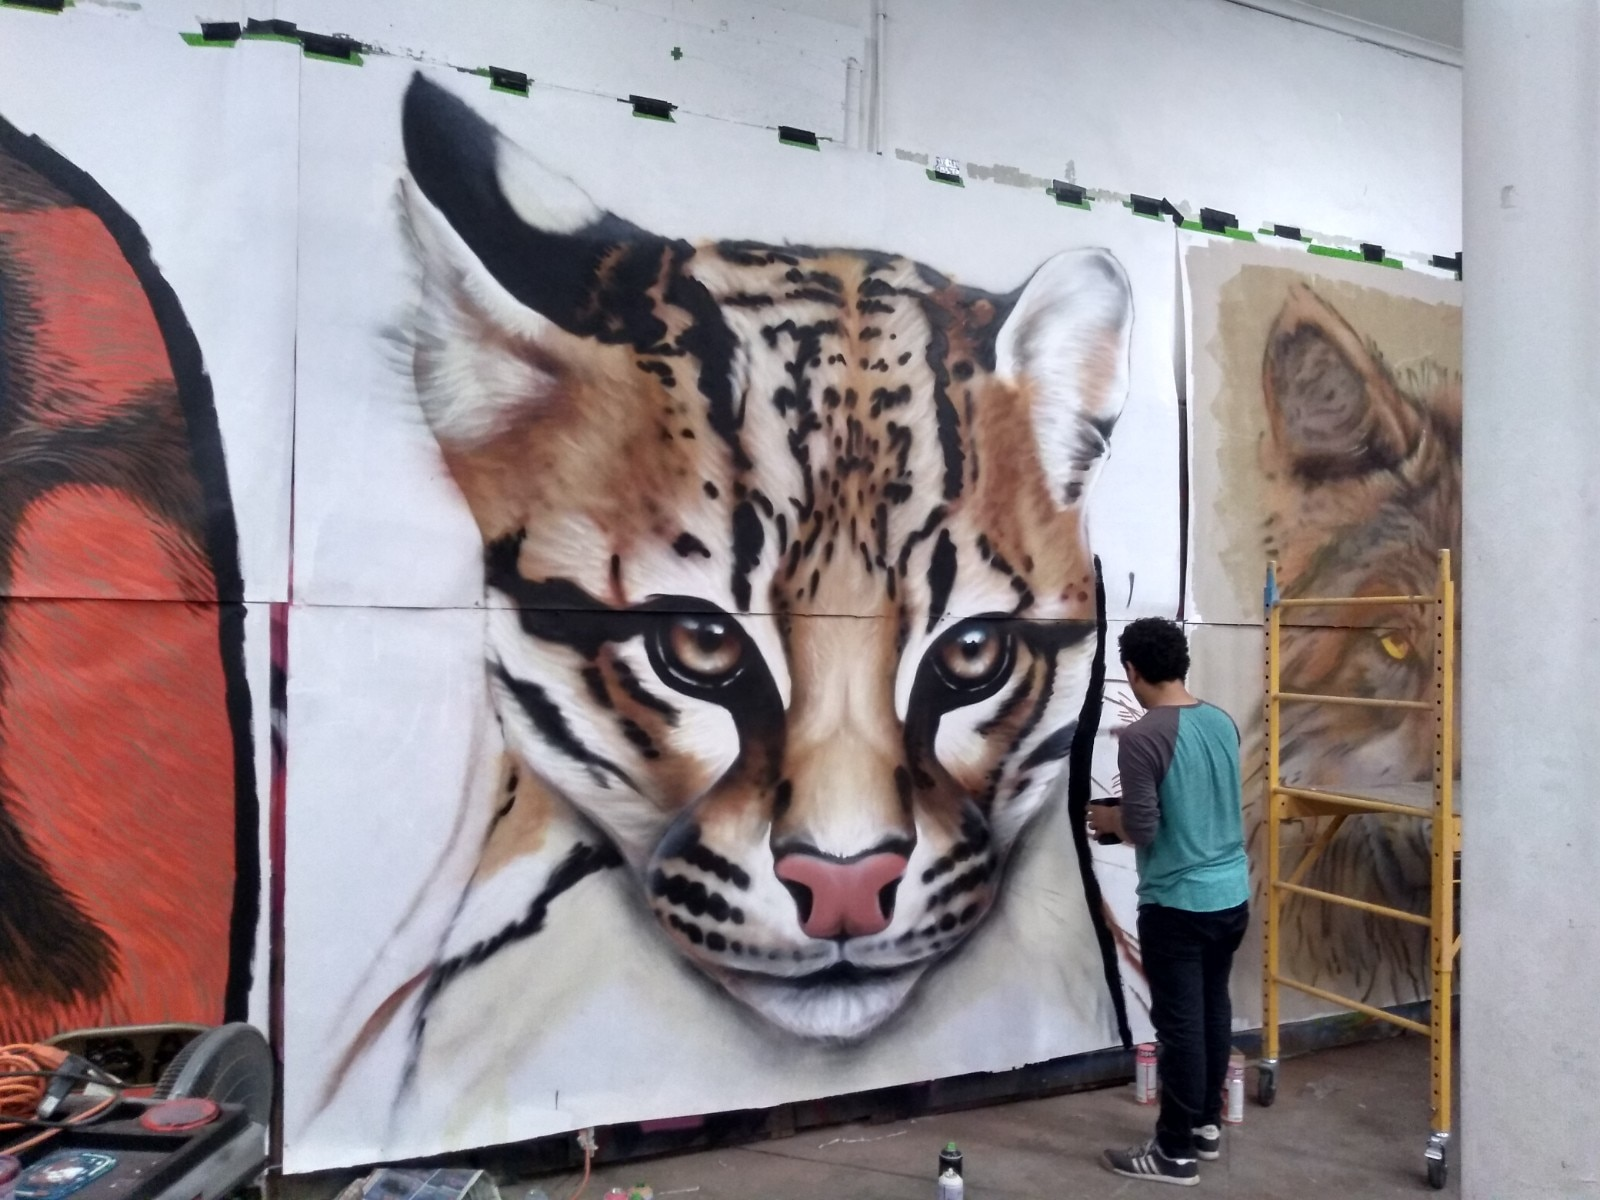 An ocelot is featured on a new mural in El Paso depicting endangered borderland wildlife. Ivan Melendez of Ciudad Juárez was one of four artists who worked on the piece, which is part of a national mural project. (Courtesy of Roger Peet)